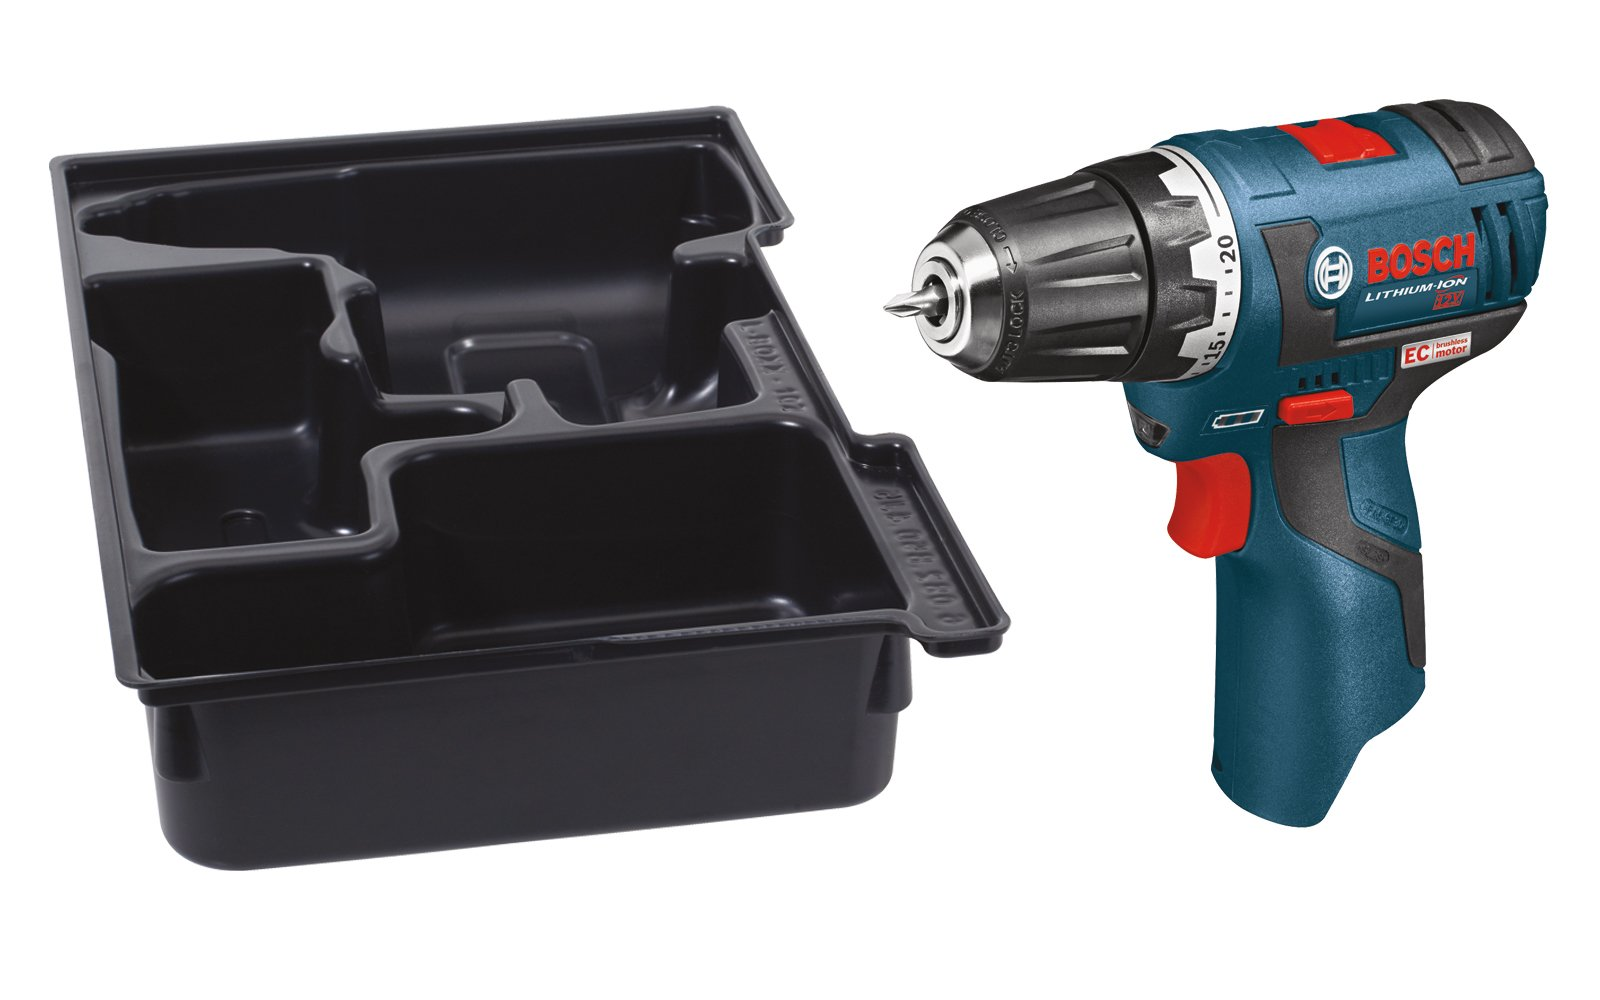 Bosch PS32BN Bare-Tool 12-volt Max Brushless 3/8-Inch Drill/Driver with Insert Tray for L-Boxx